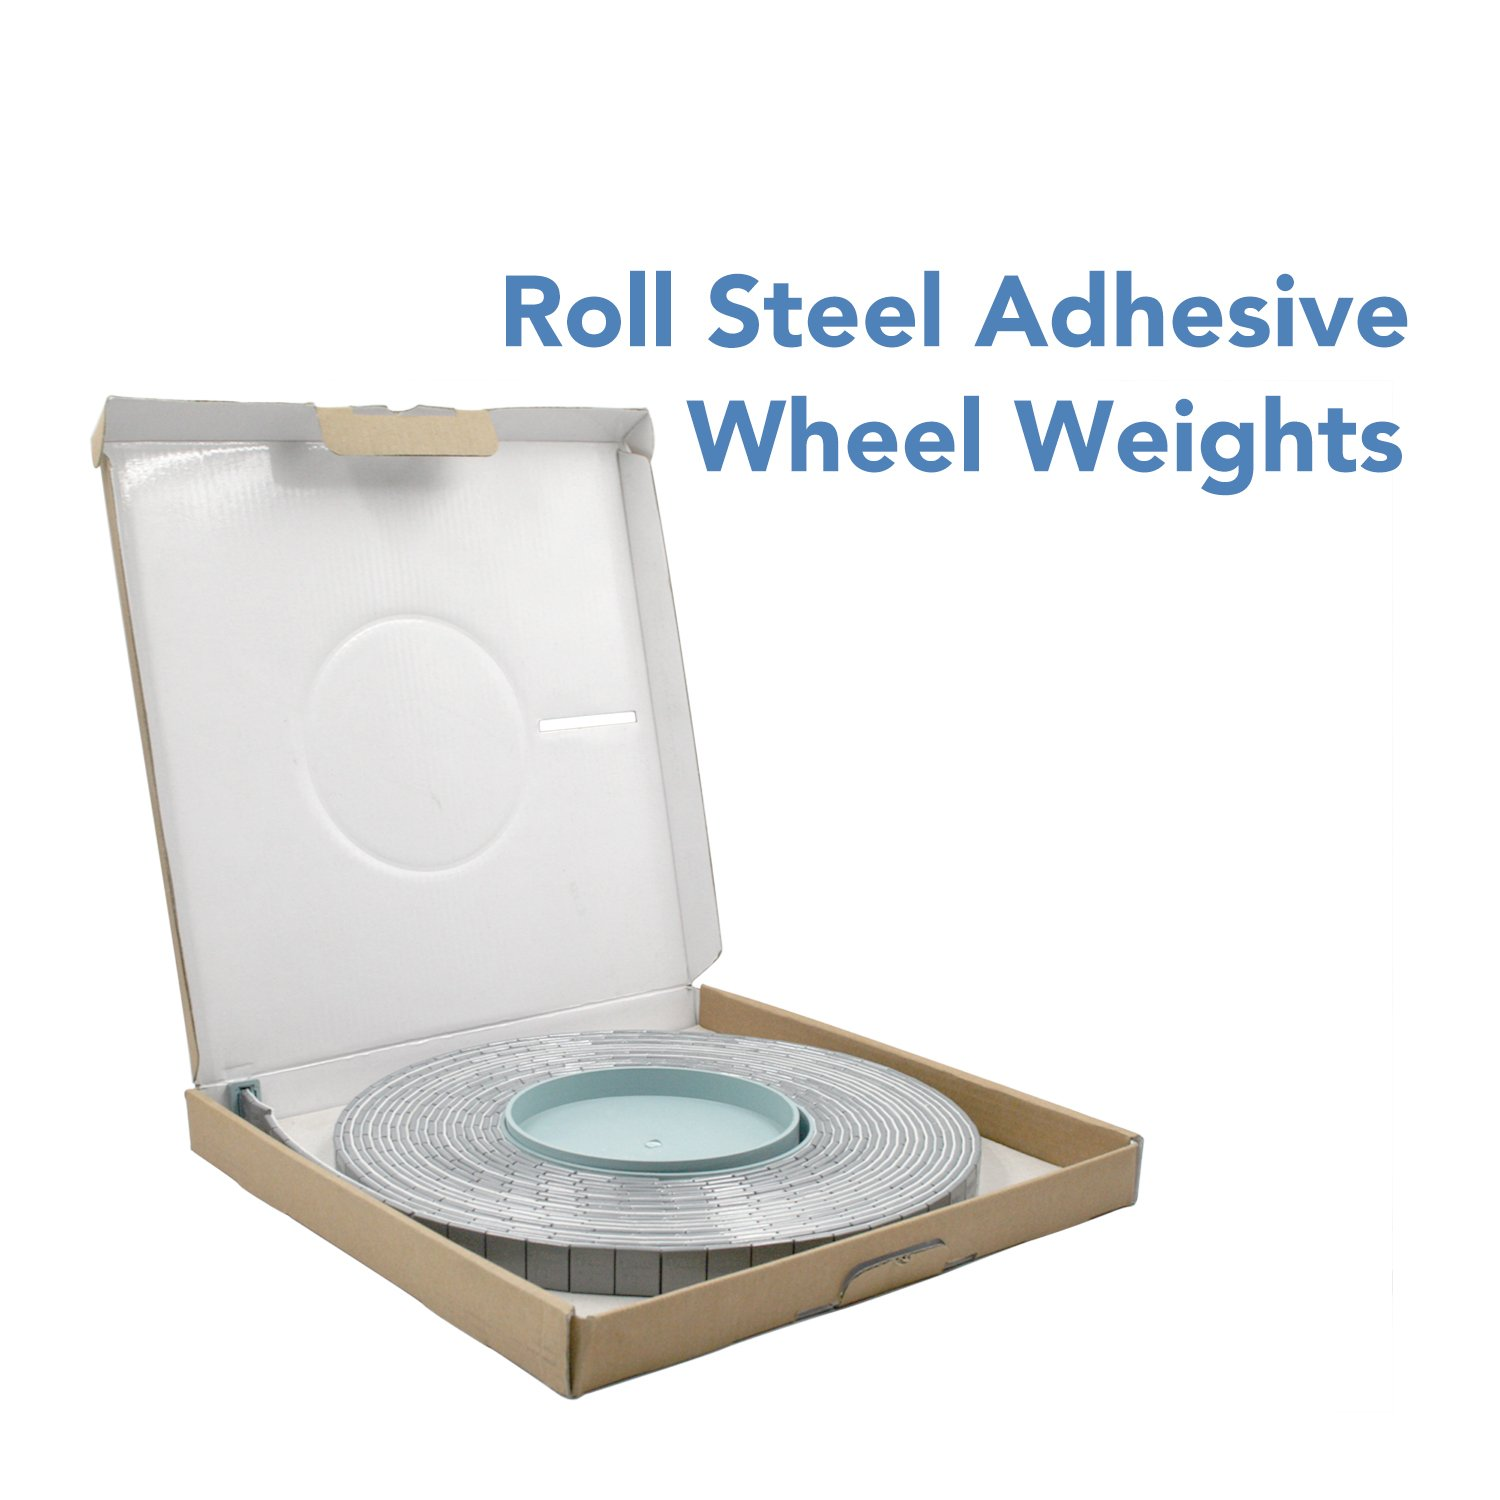 GM Trucks /& SUVs 0.25oz Low Profile 60oz//Box US Quality, Black Steel Wheel Weights Ford 1//4oz Valued Pack Perfect for Garages Chrysler 960pcs 4 Boxes Automobiles